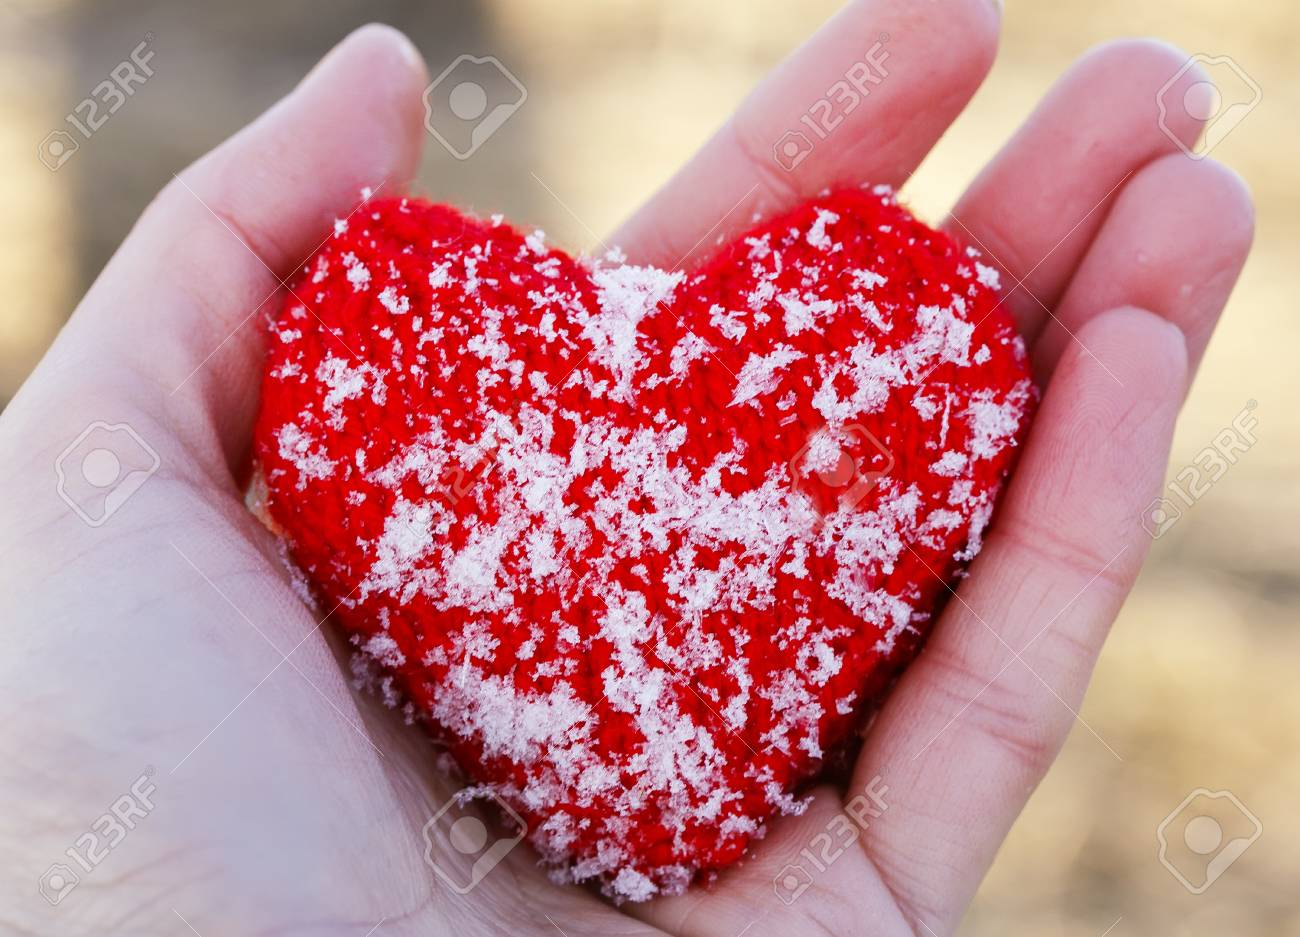 Stock photo warm knitted red heart is covered with cold ice crystals lies in the palm of your hand